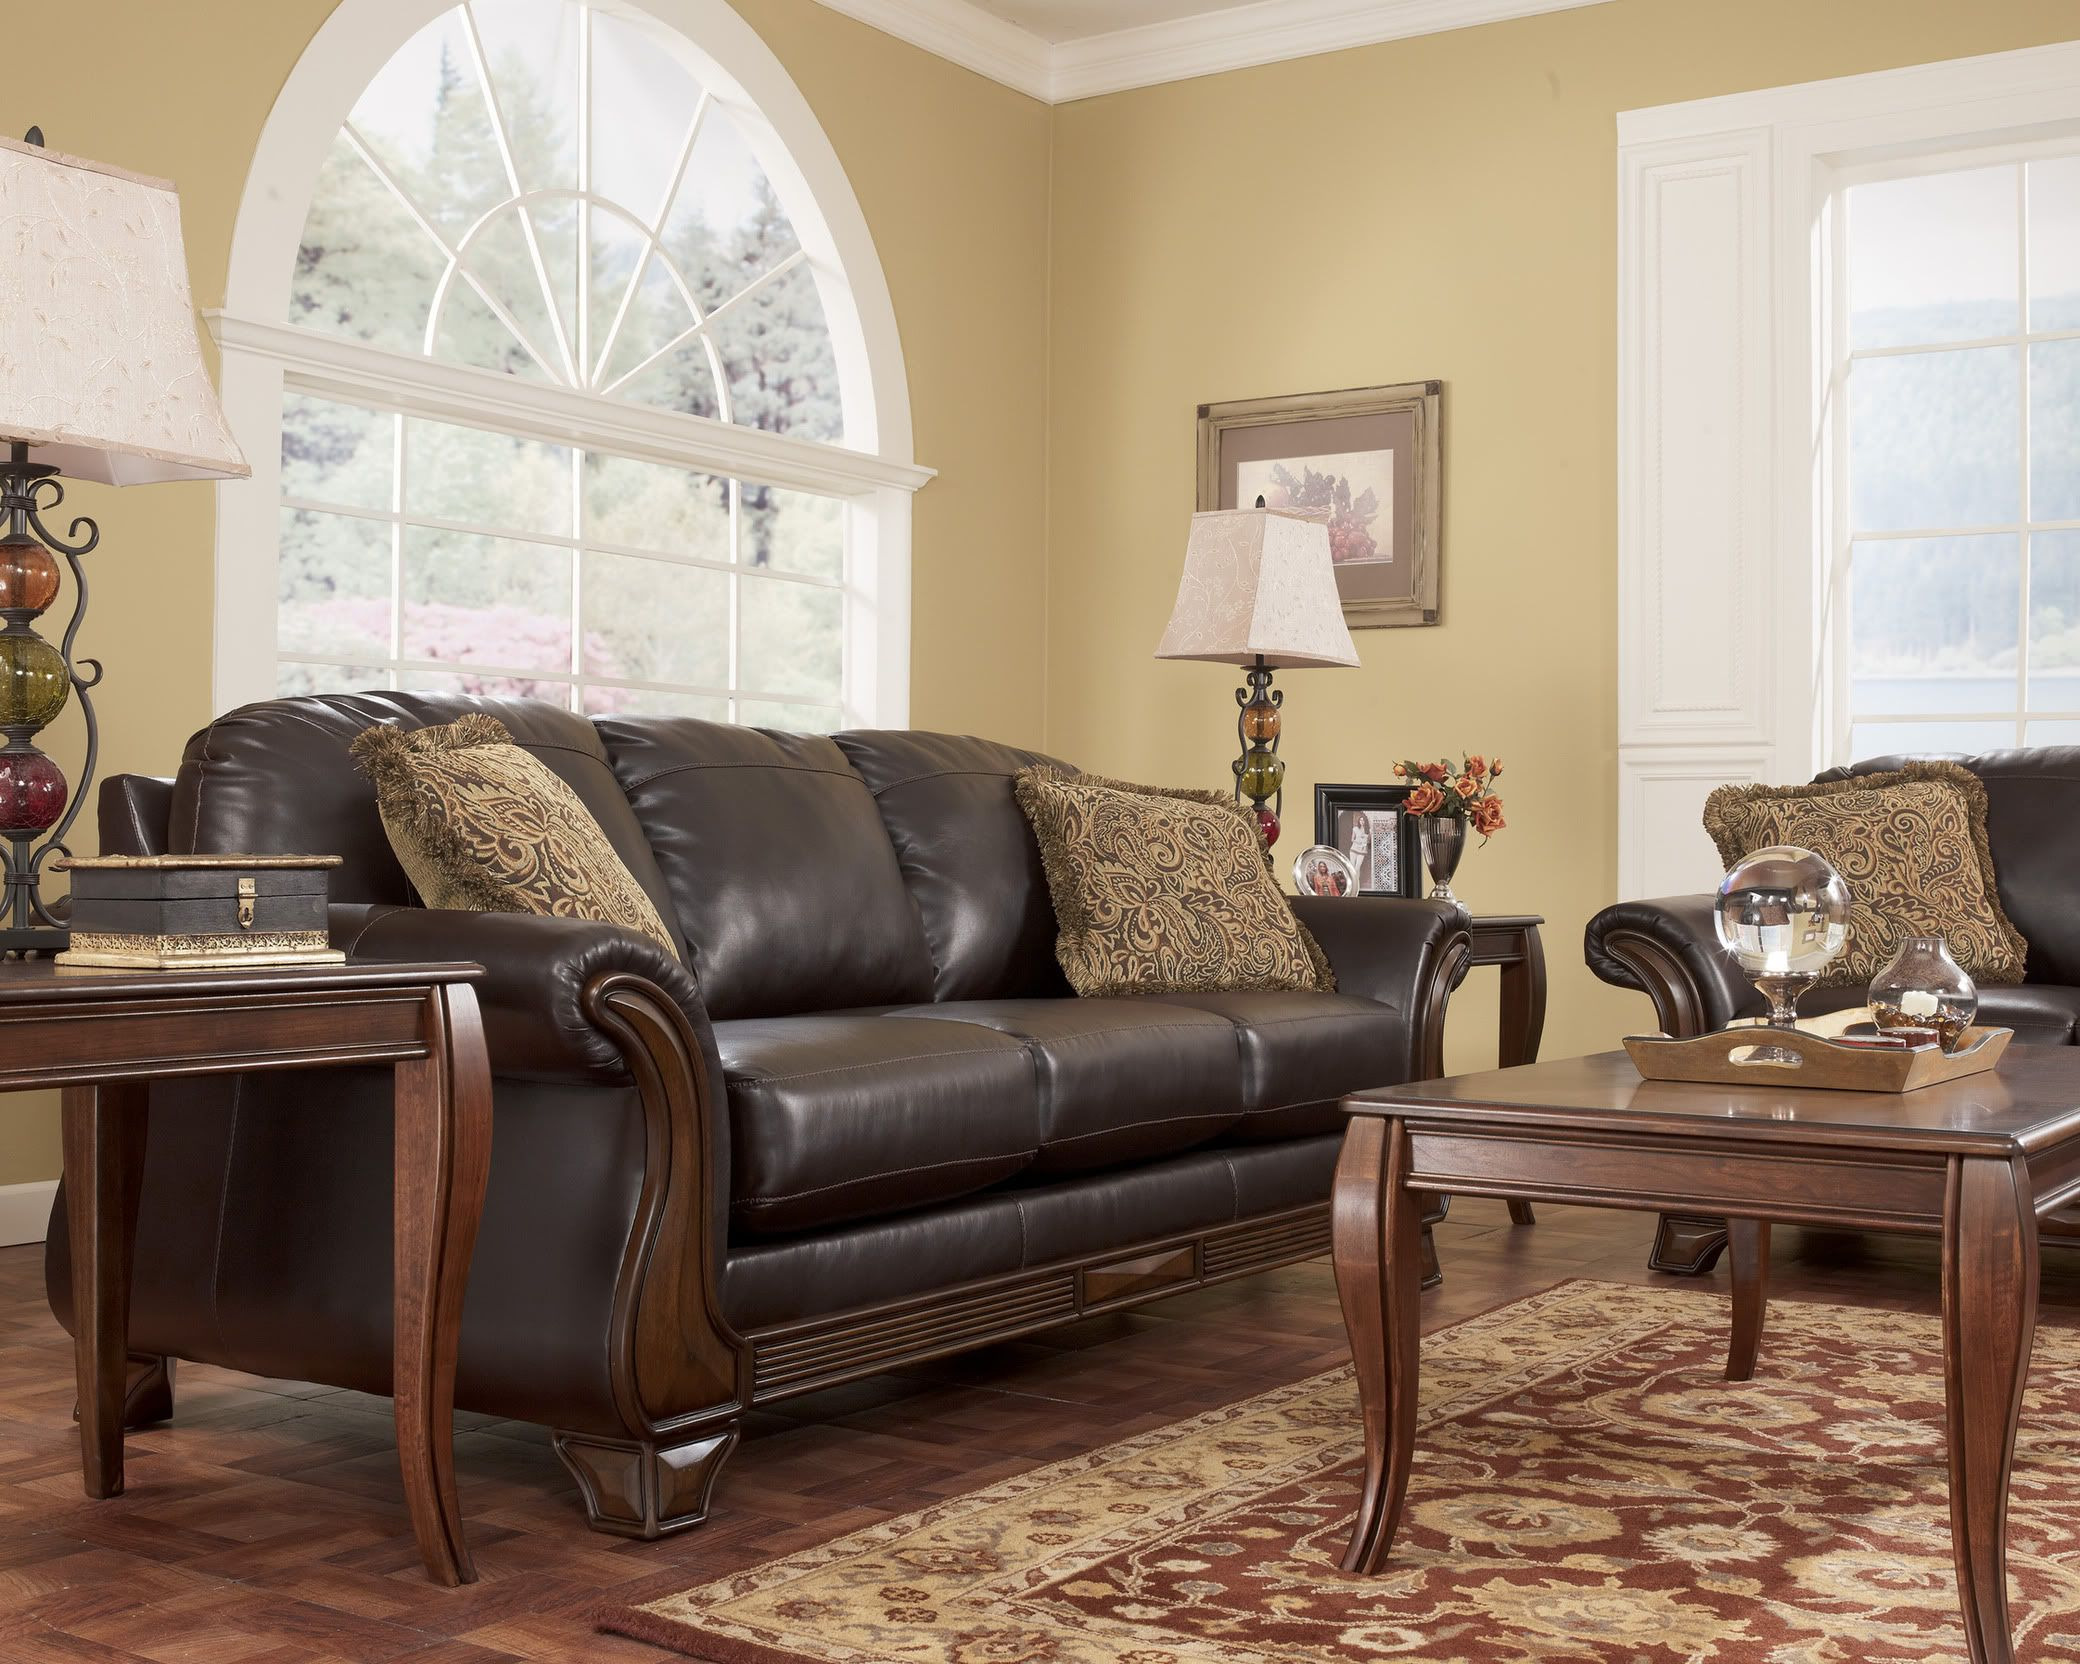 Details about Traditional Wood Trim Brown Fabric Sofa Couch ...